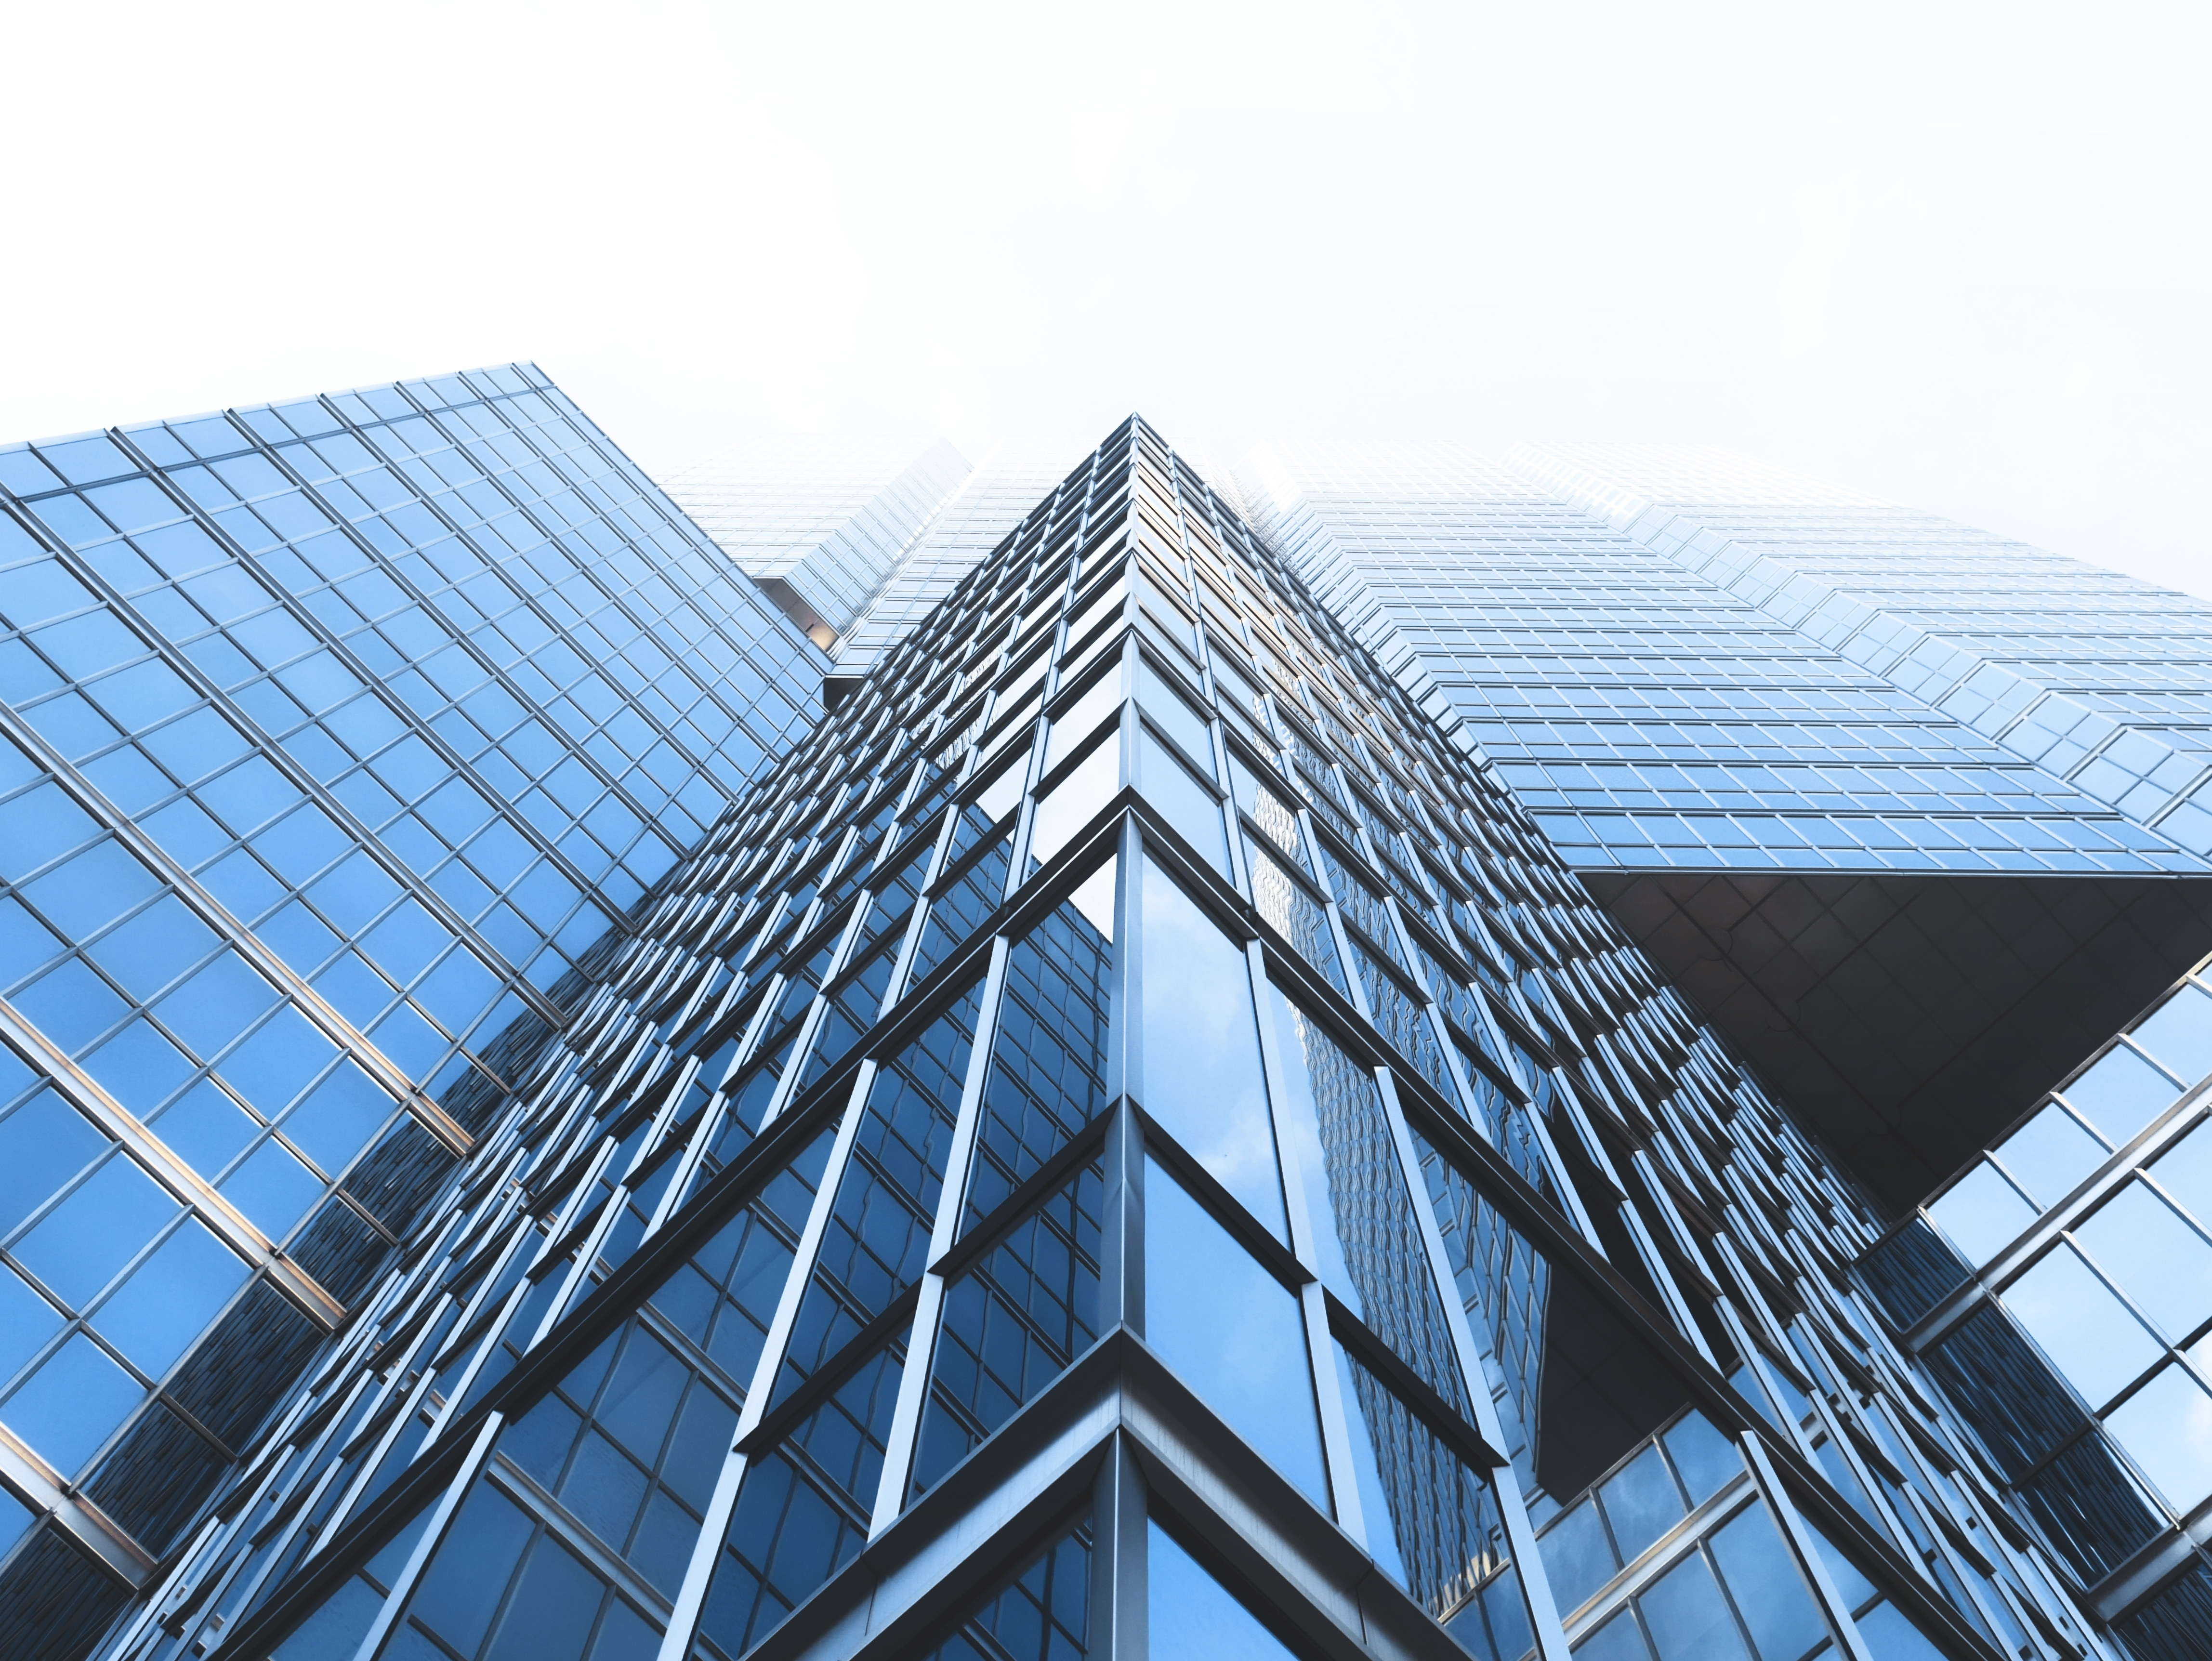 Wallpaper Modern Buildings, Worm View, Perspective, (#295680) - HD ...